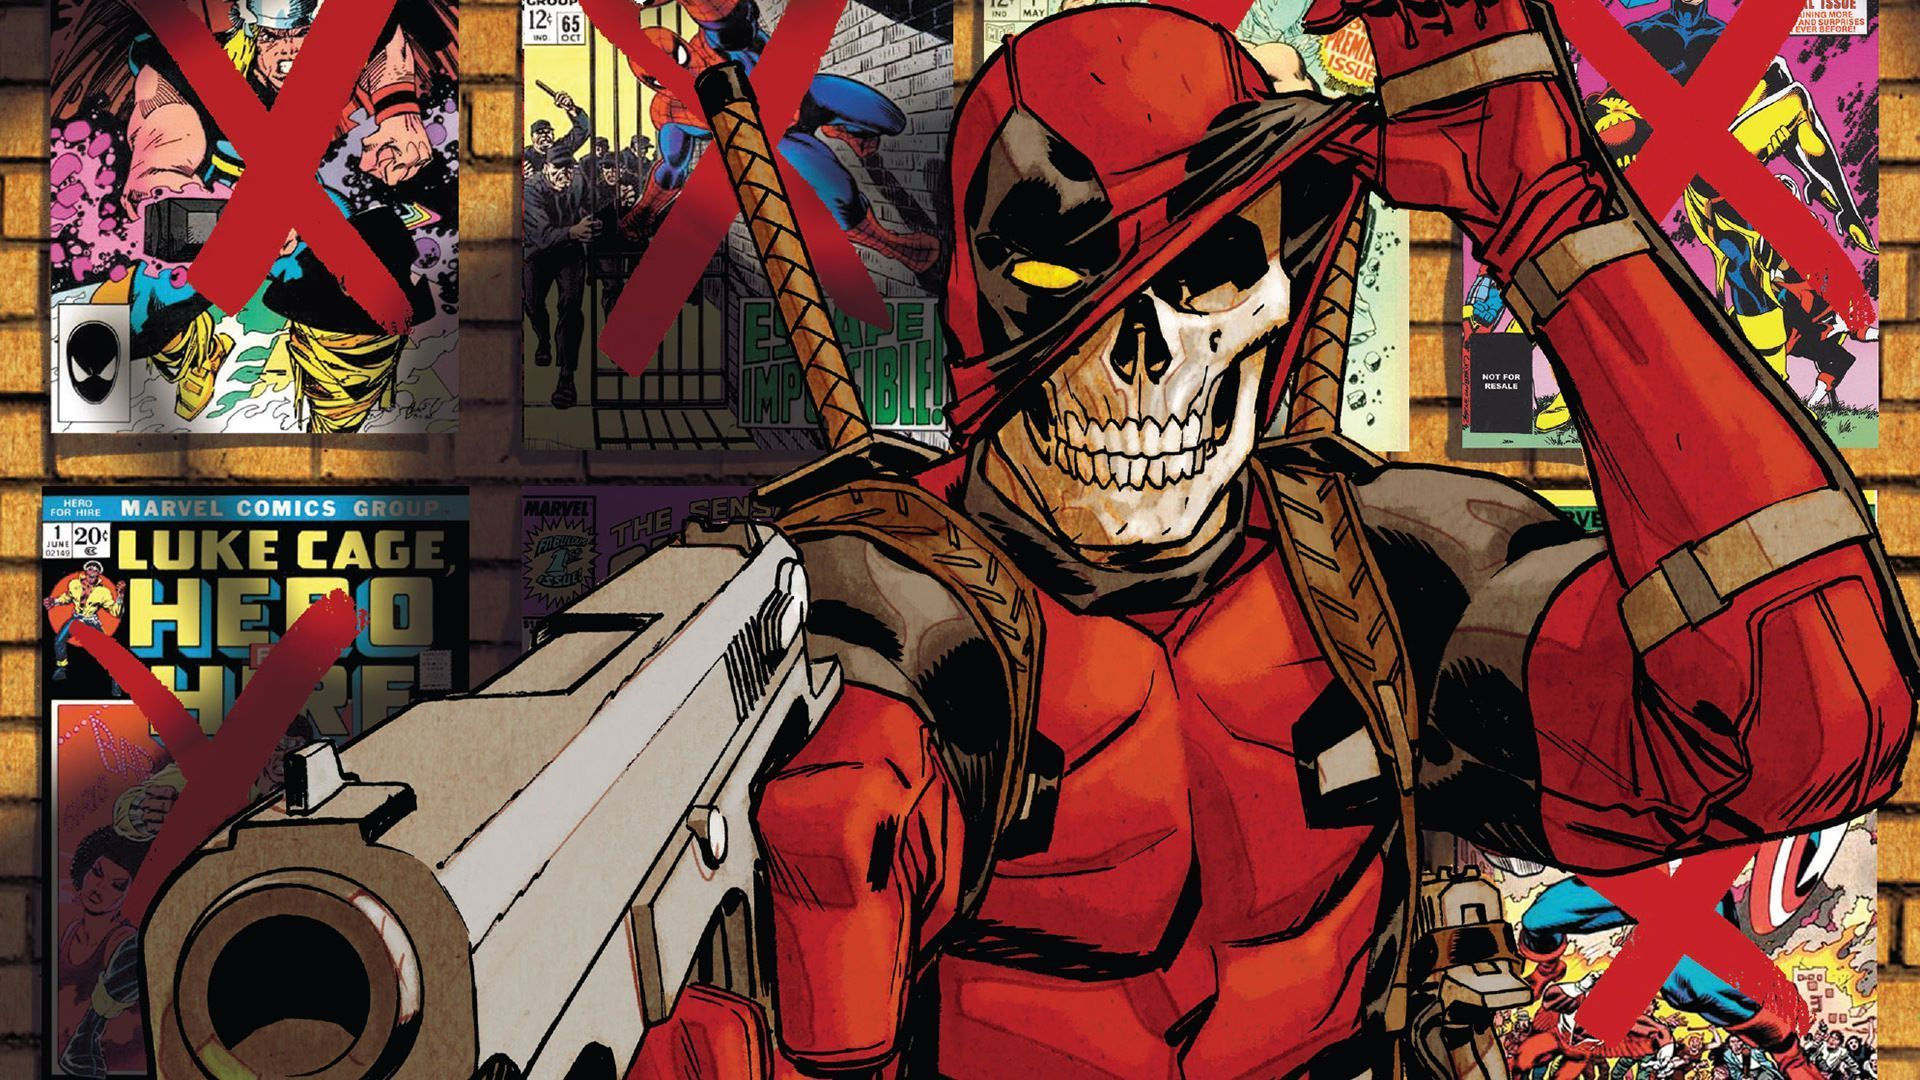 1920x1080 Deadpool is Dead under his mask | Zoom Comics - Daily Comic ...